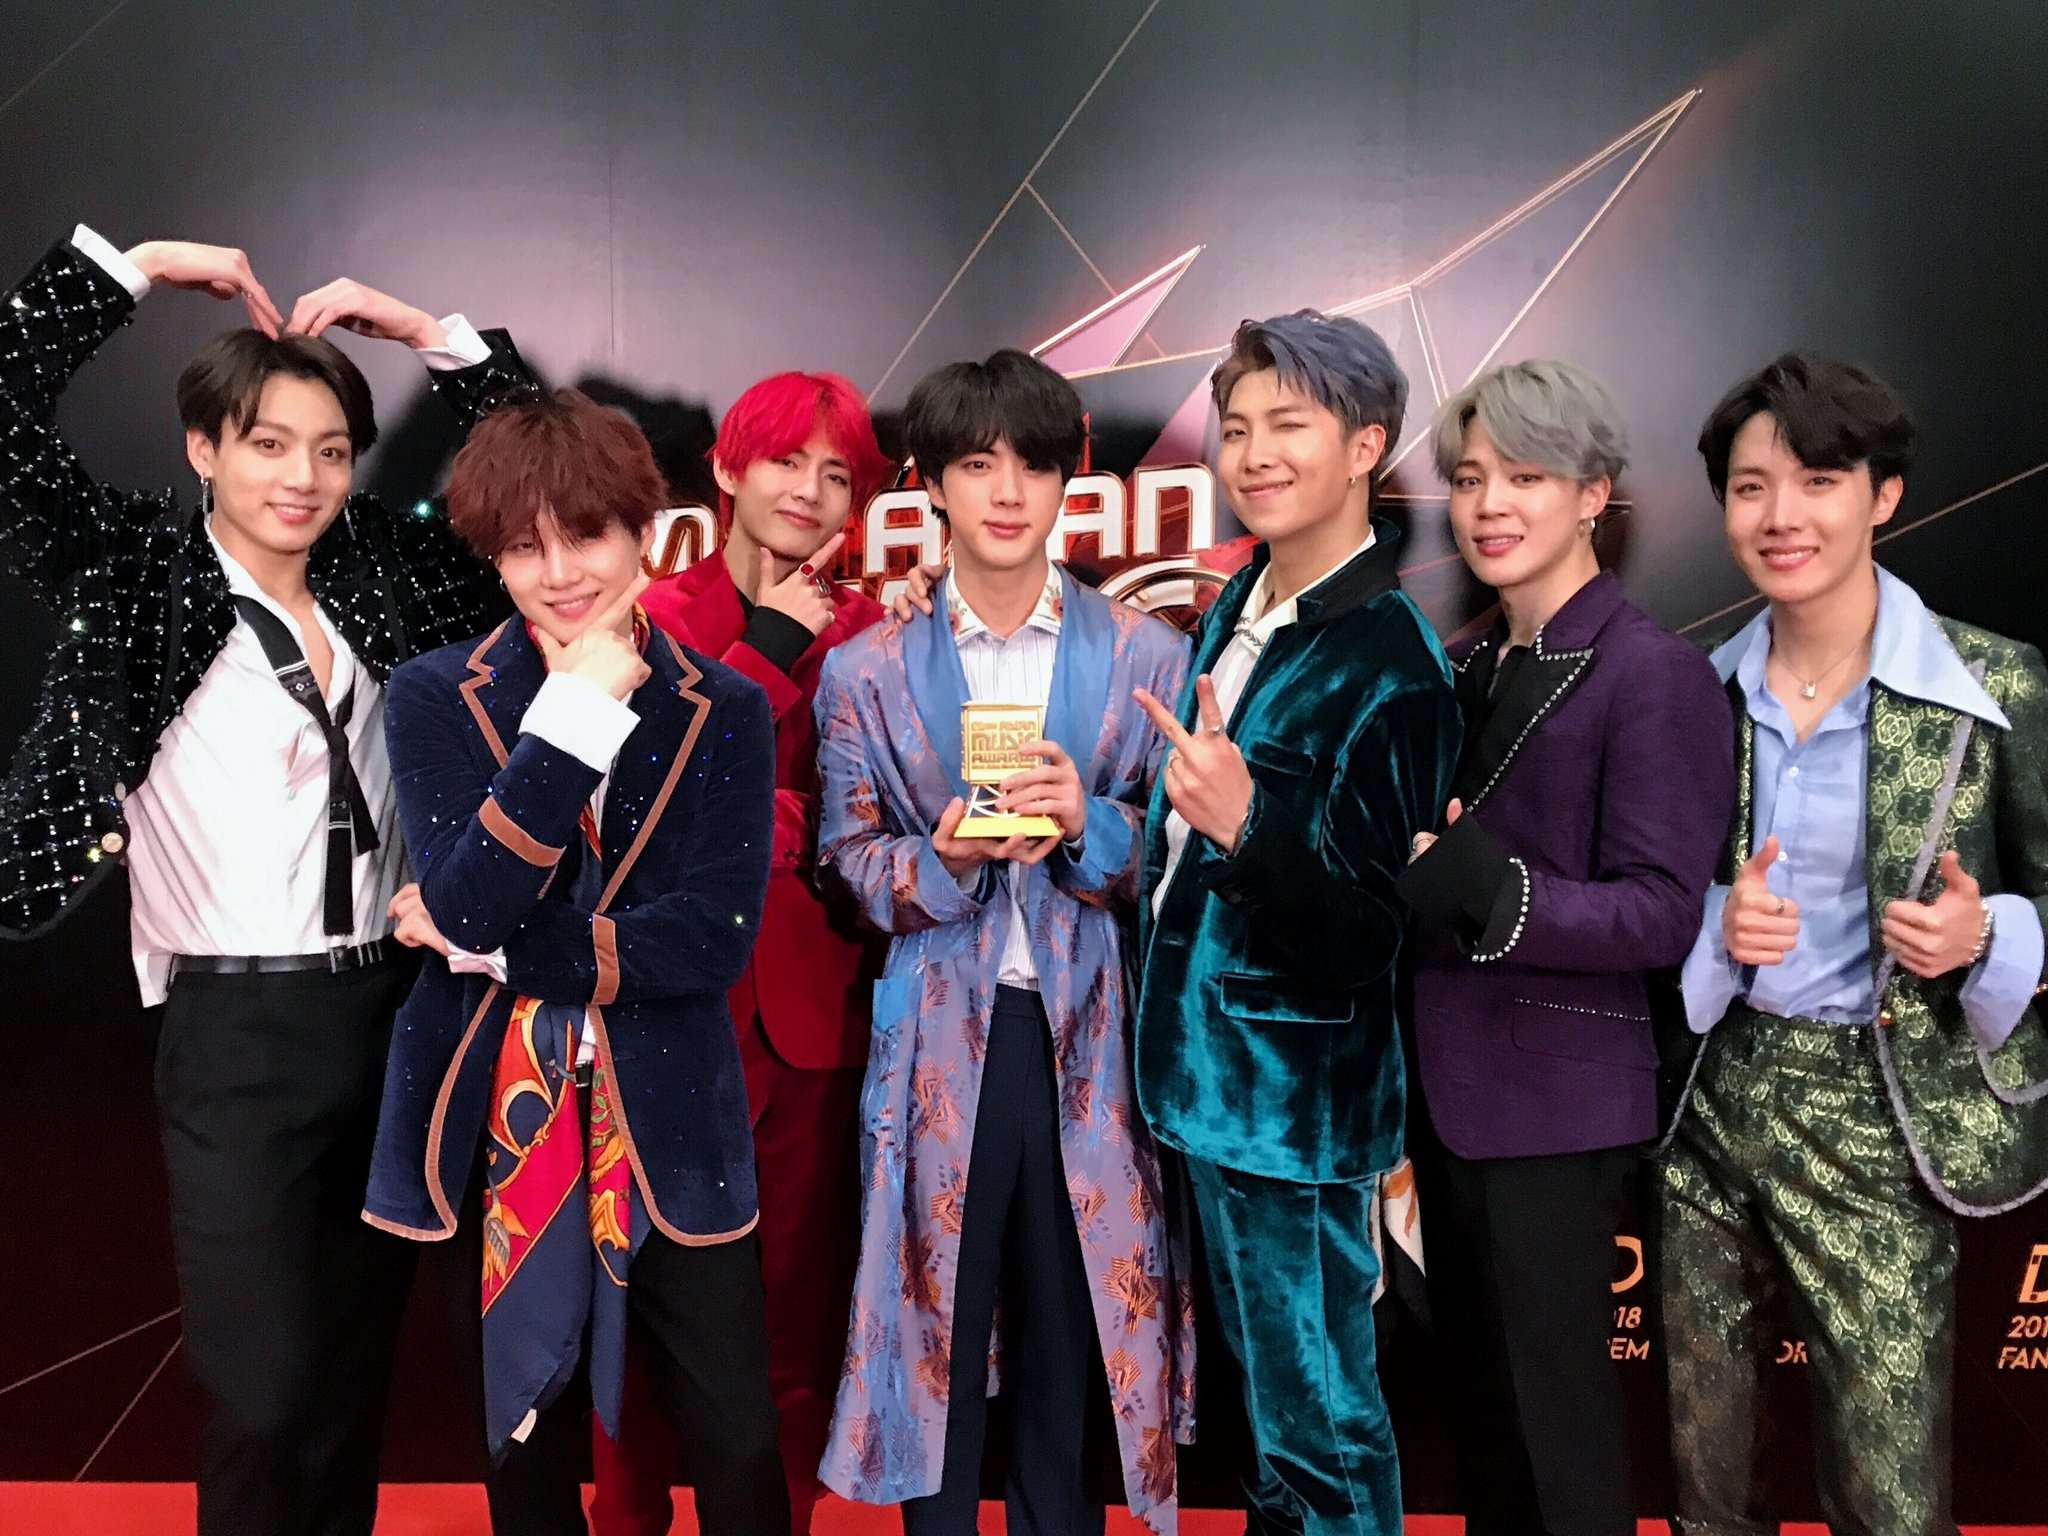 bts, bts profile, bts facts, bts members, bts age, bts height, bts weight, bts tallest, bts shortest, bts bbmas 2018